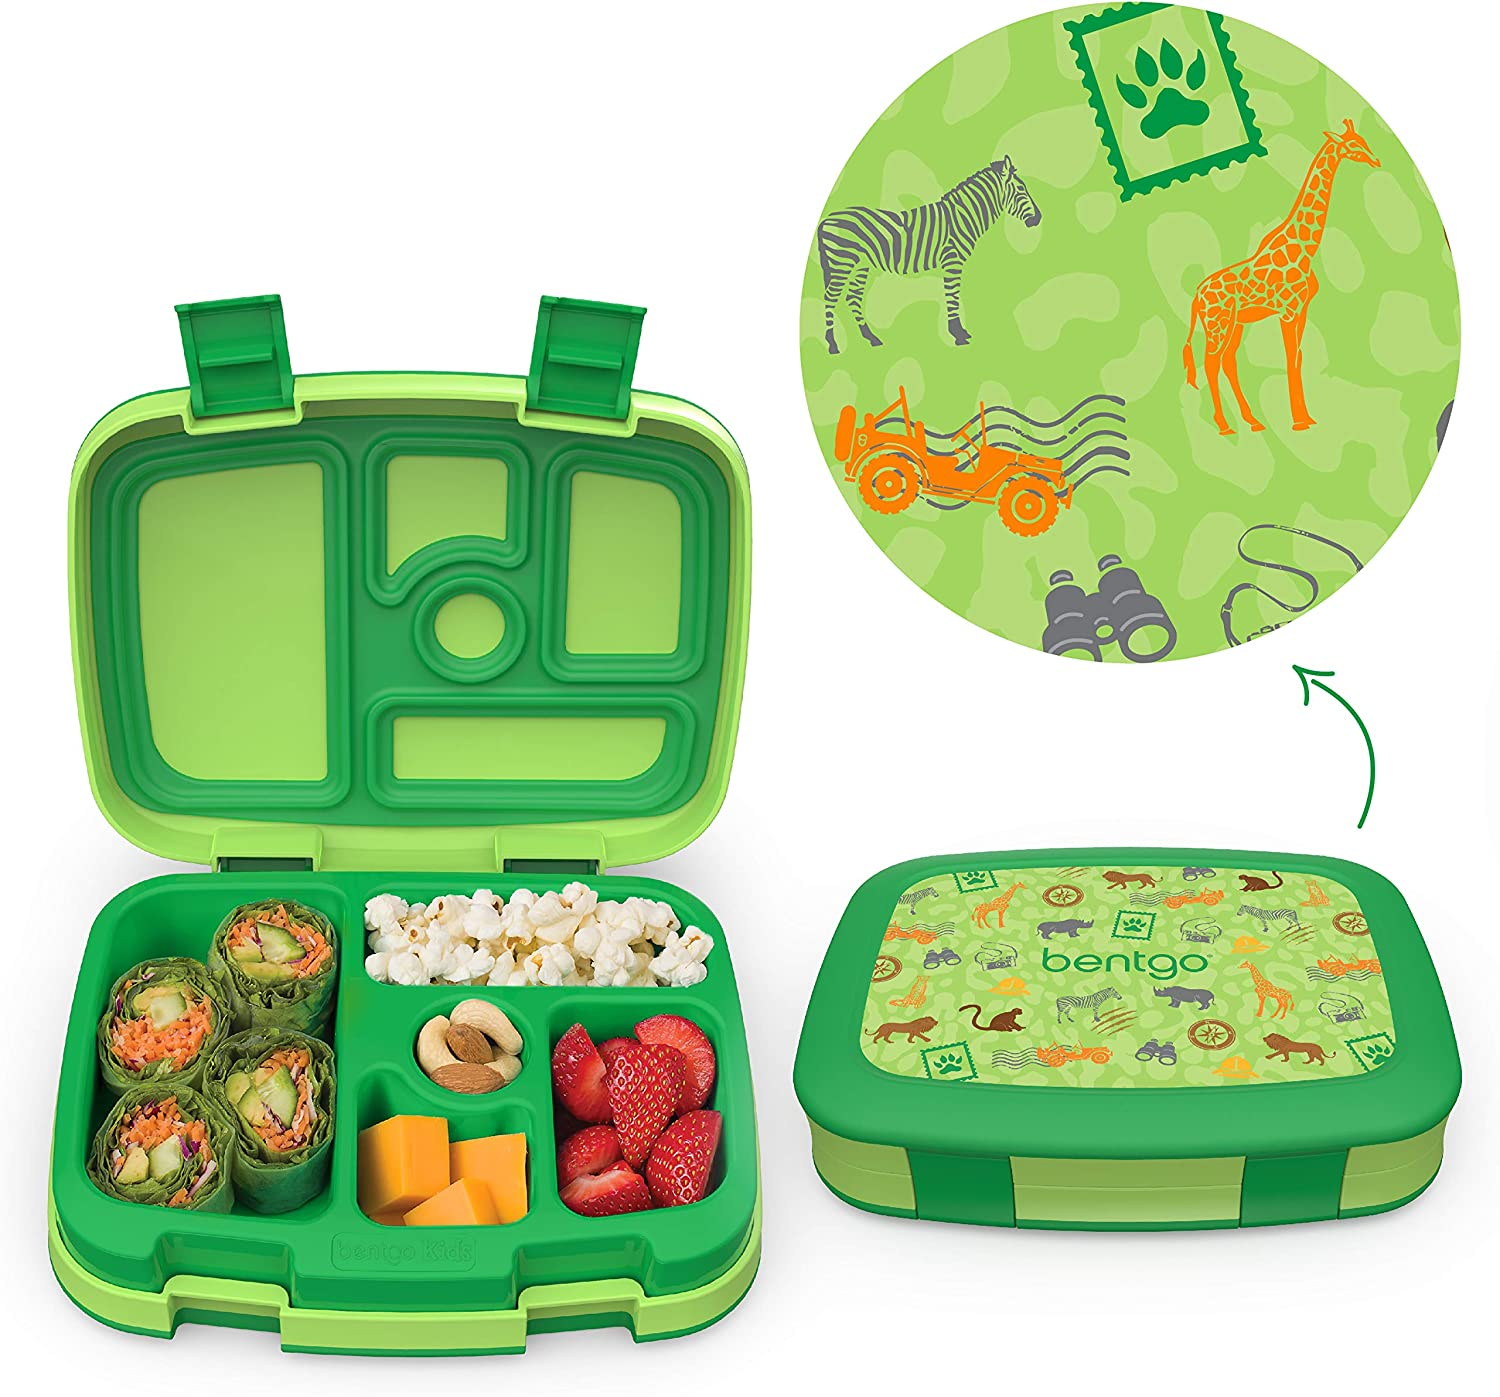 Bentgo Kids Prints Leak-Proof, 5-Compartment Bento-Style Kids Lunch Box - Ideal Portion Sizes for Ages 3 to 7 - BPA-Free and Food-Safe Materials - 2020 Collection - Safari